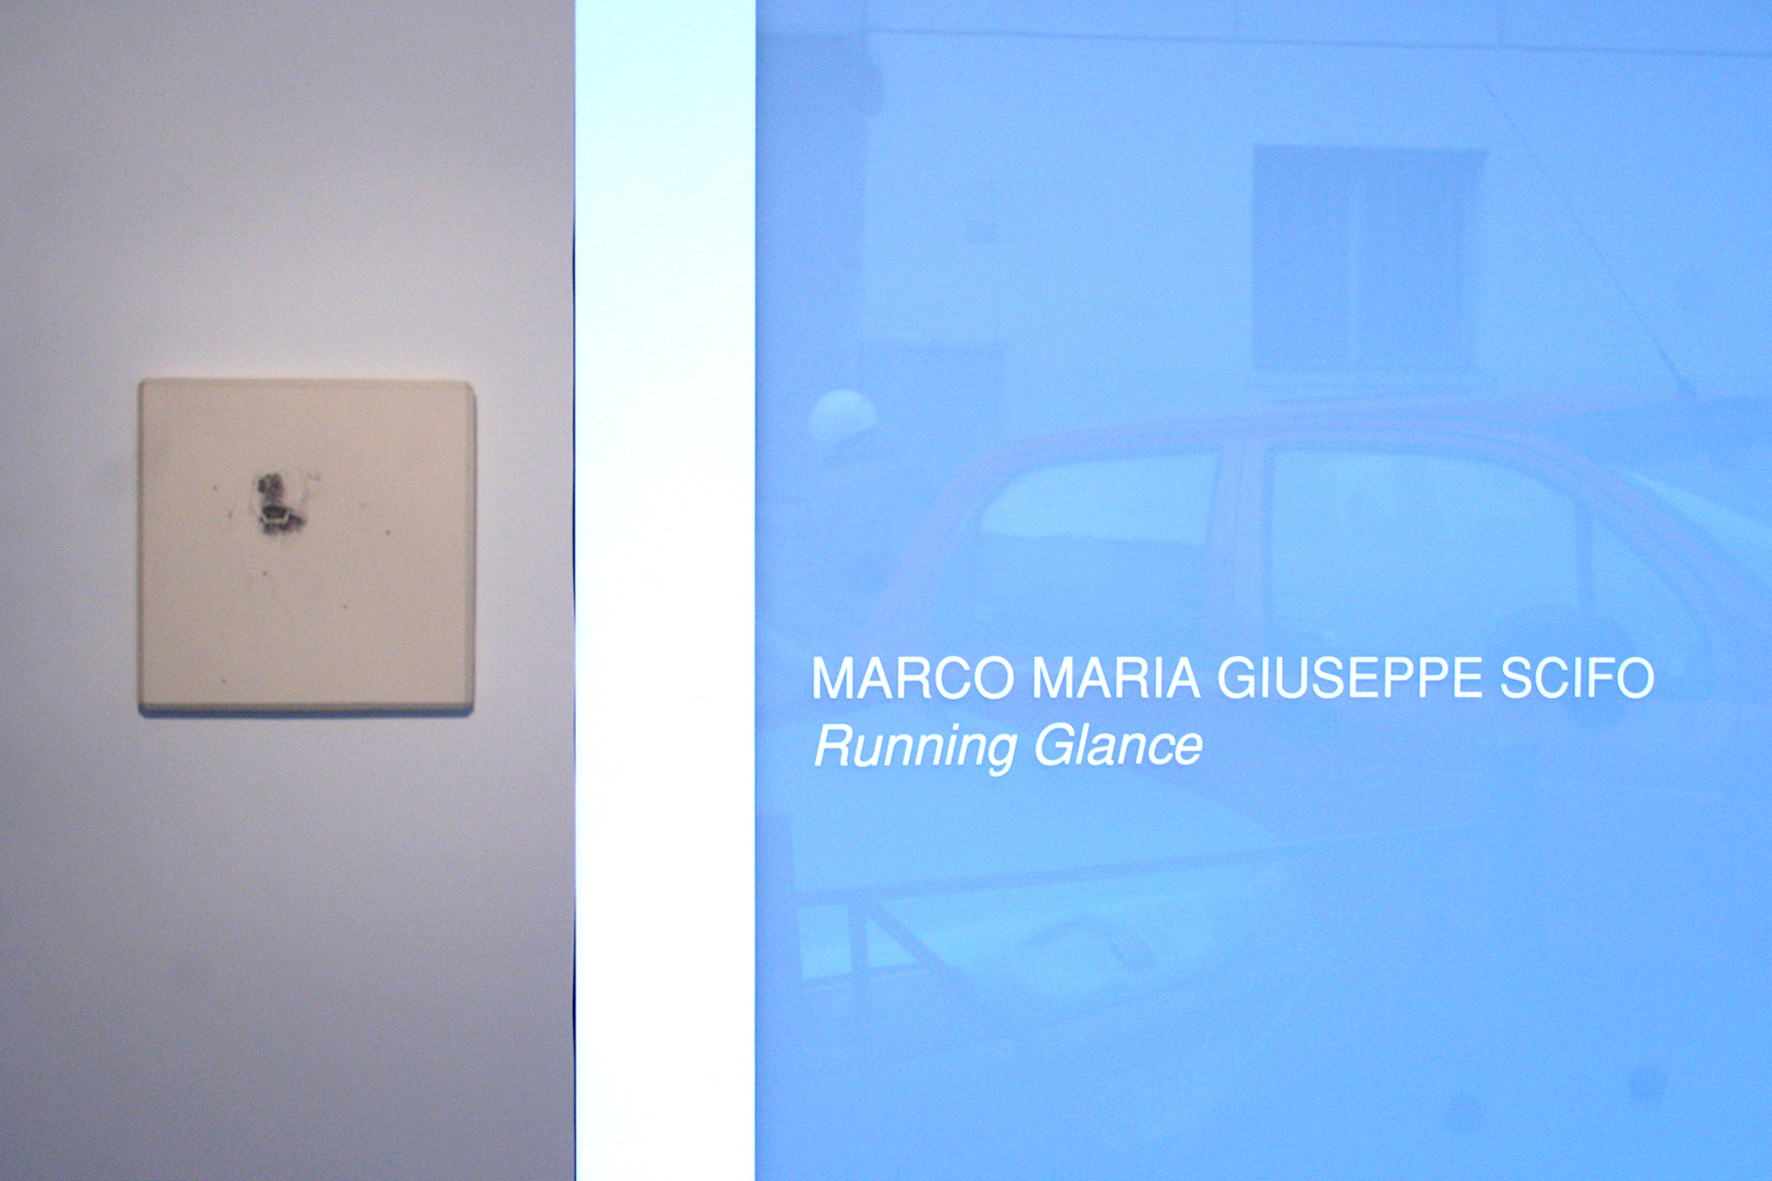 Marco Maria Giuseppe Scifo - Running Glance